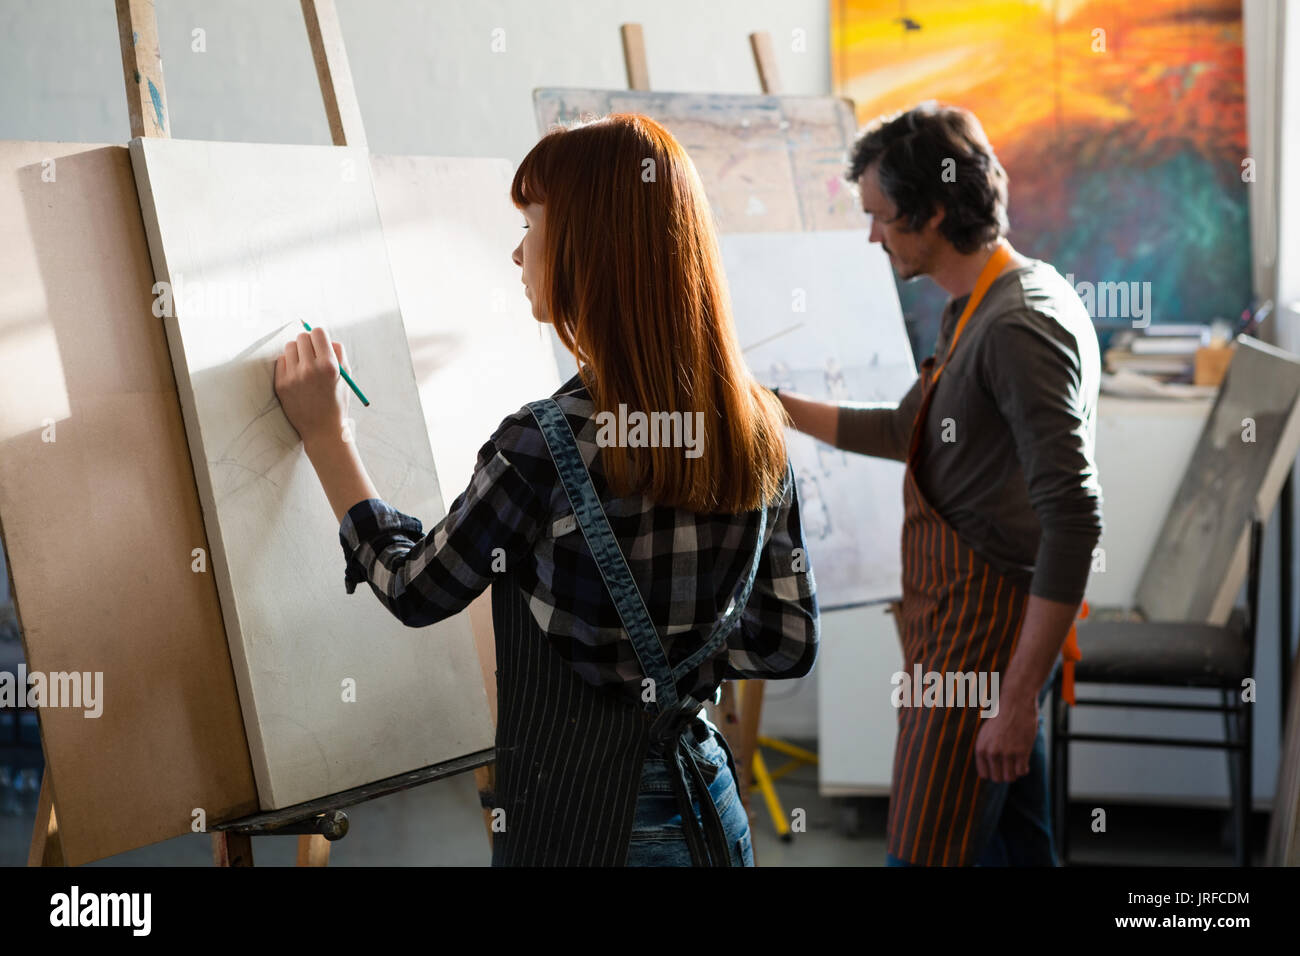 Man and woman drawing on artists canvas in art class - Stock Image